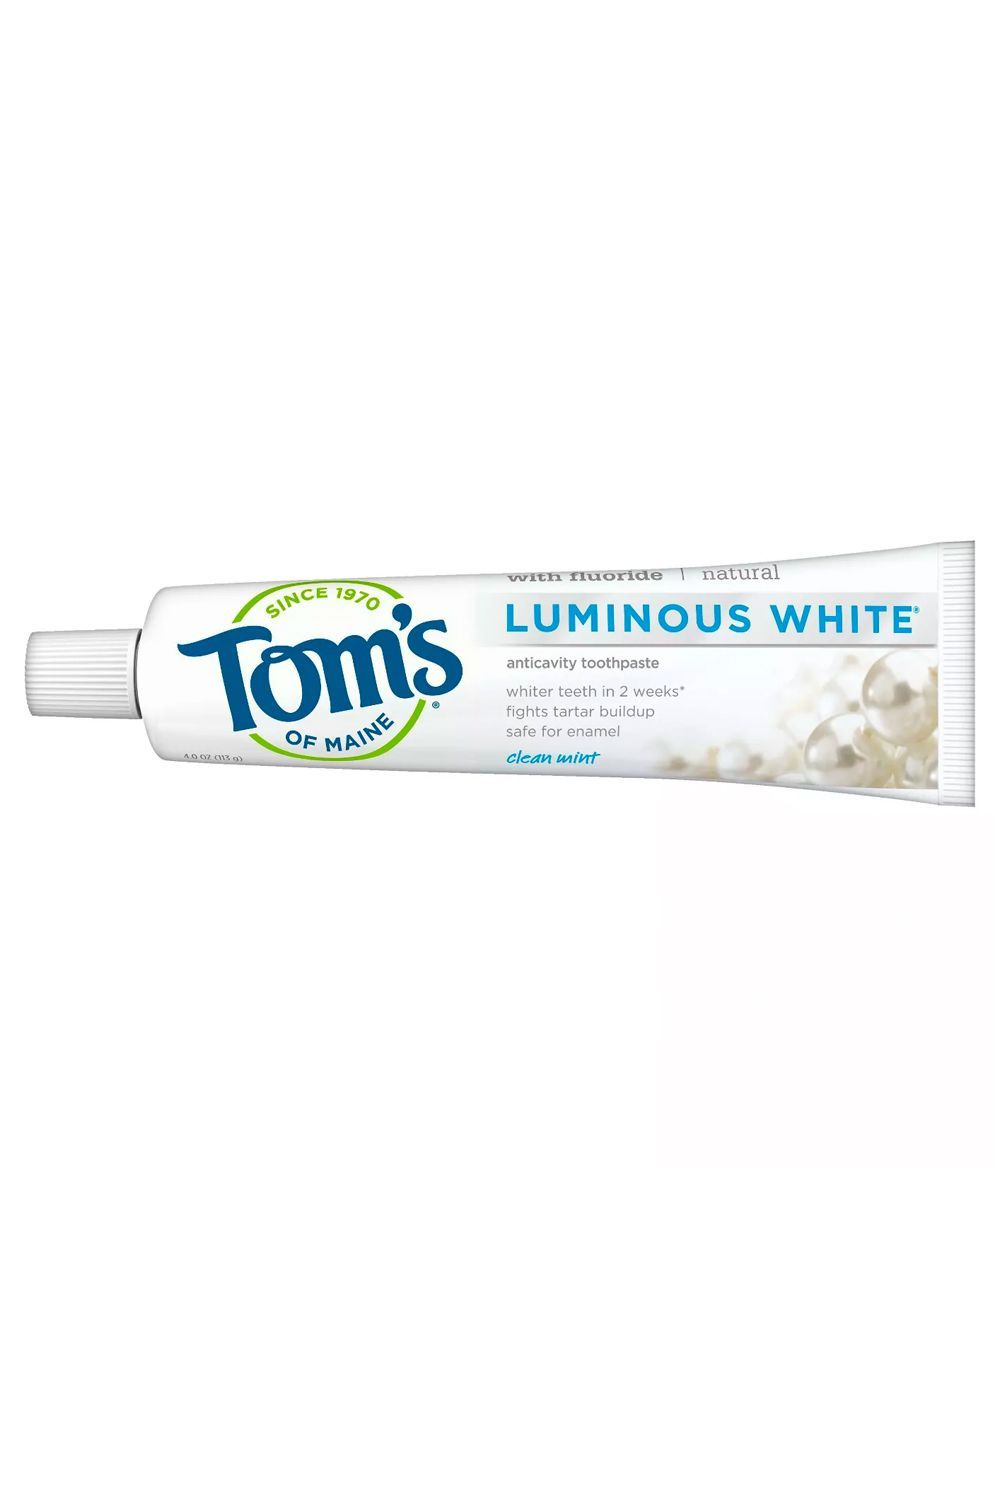 9 Best Whitening Toothpastes Of 2020 For Yellow Stained Teeth